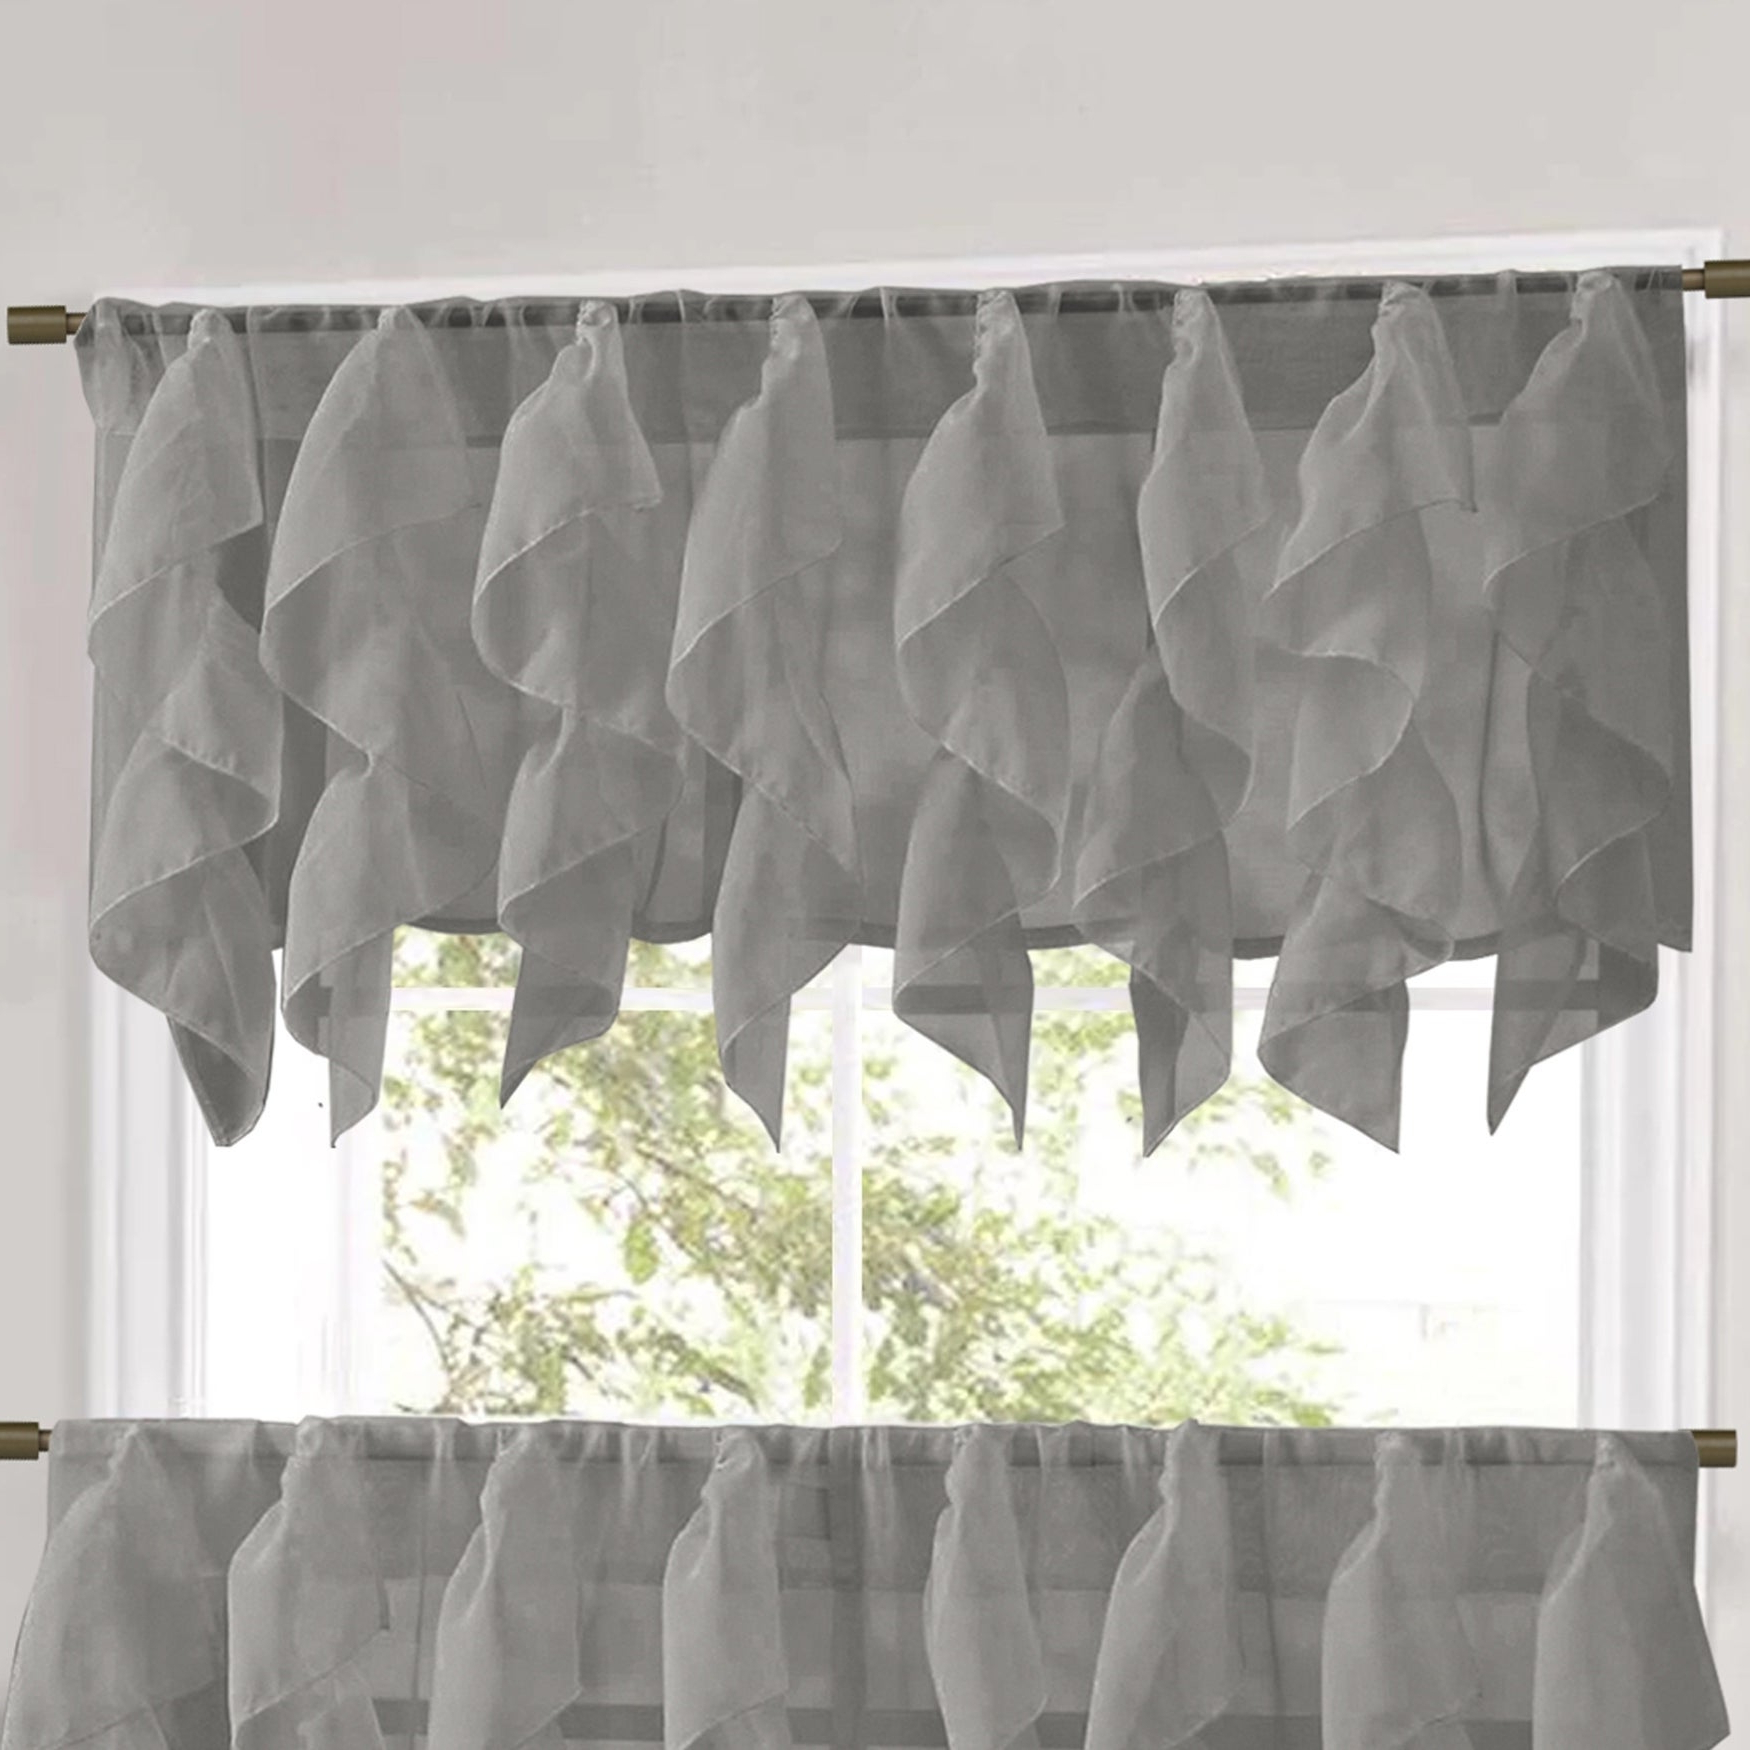 Famous Sweet Home Collection Grey Vertical Ruffled Waterfall Valance And Curtain Tiers With Regard To Vertical Ruffled Waterfall Valance And Curtain Tiers (View 8 of 20)